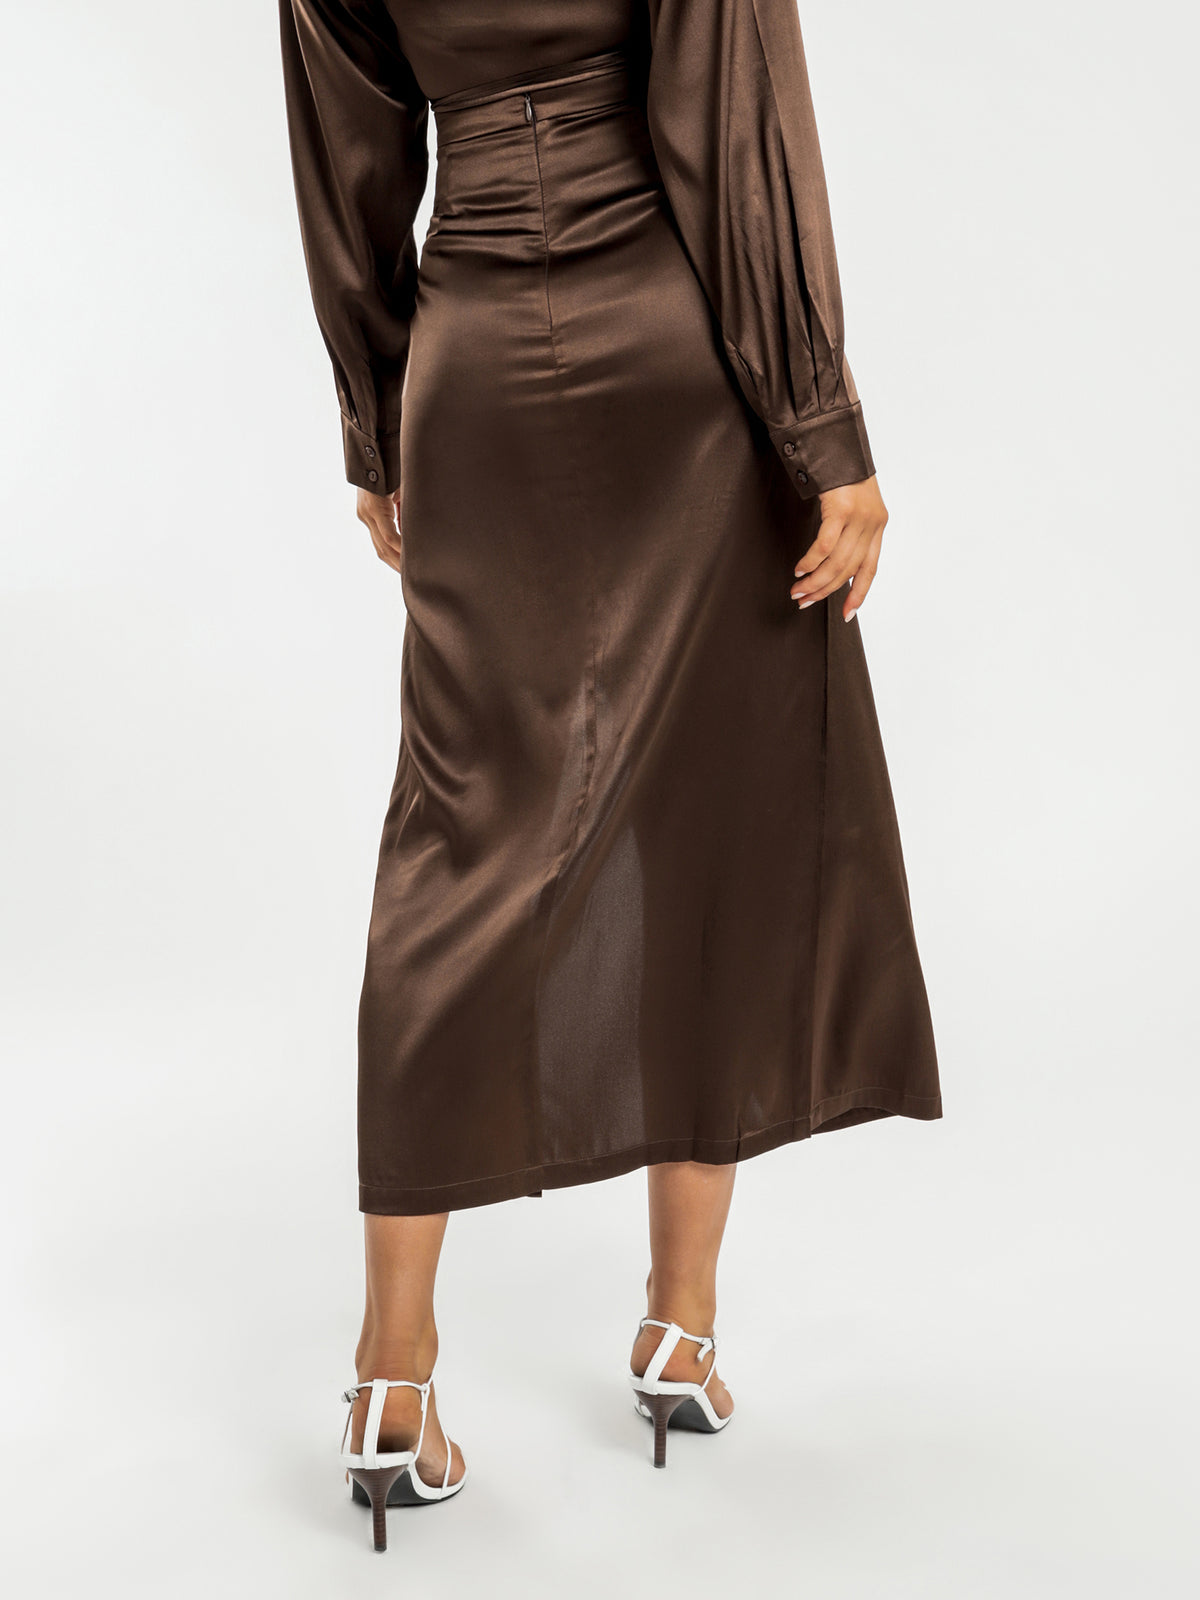 Mileshka Skirt in Chocolate